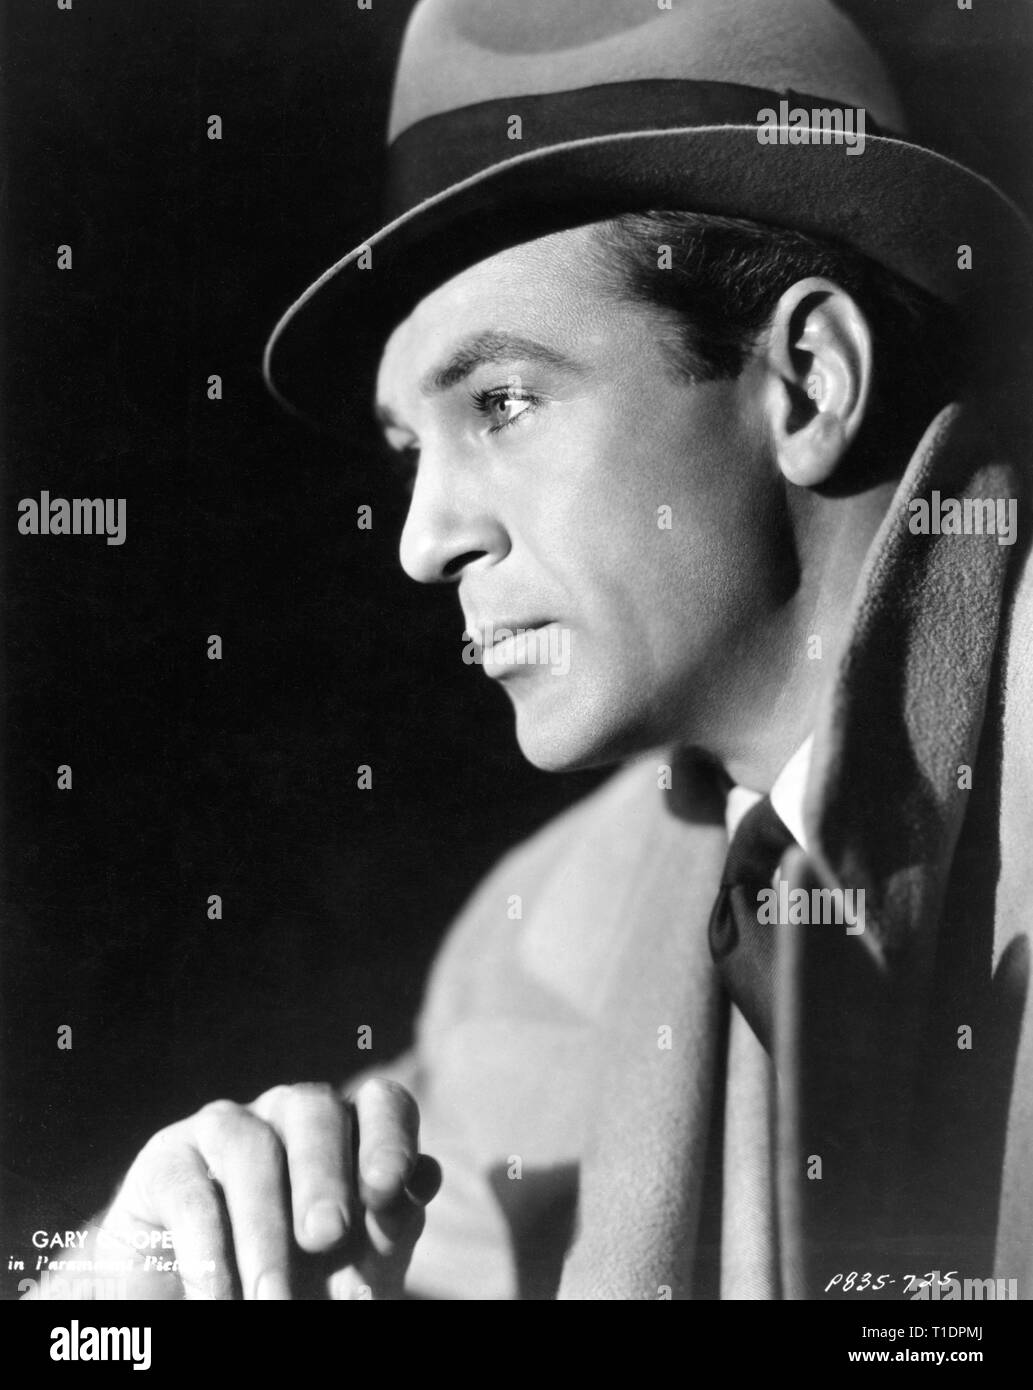 GARY COOPER 1936 Portrait Classical Hollywood Superstar Paramount Pictures Inc. - Stock Image